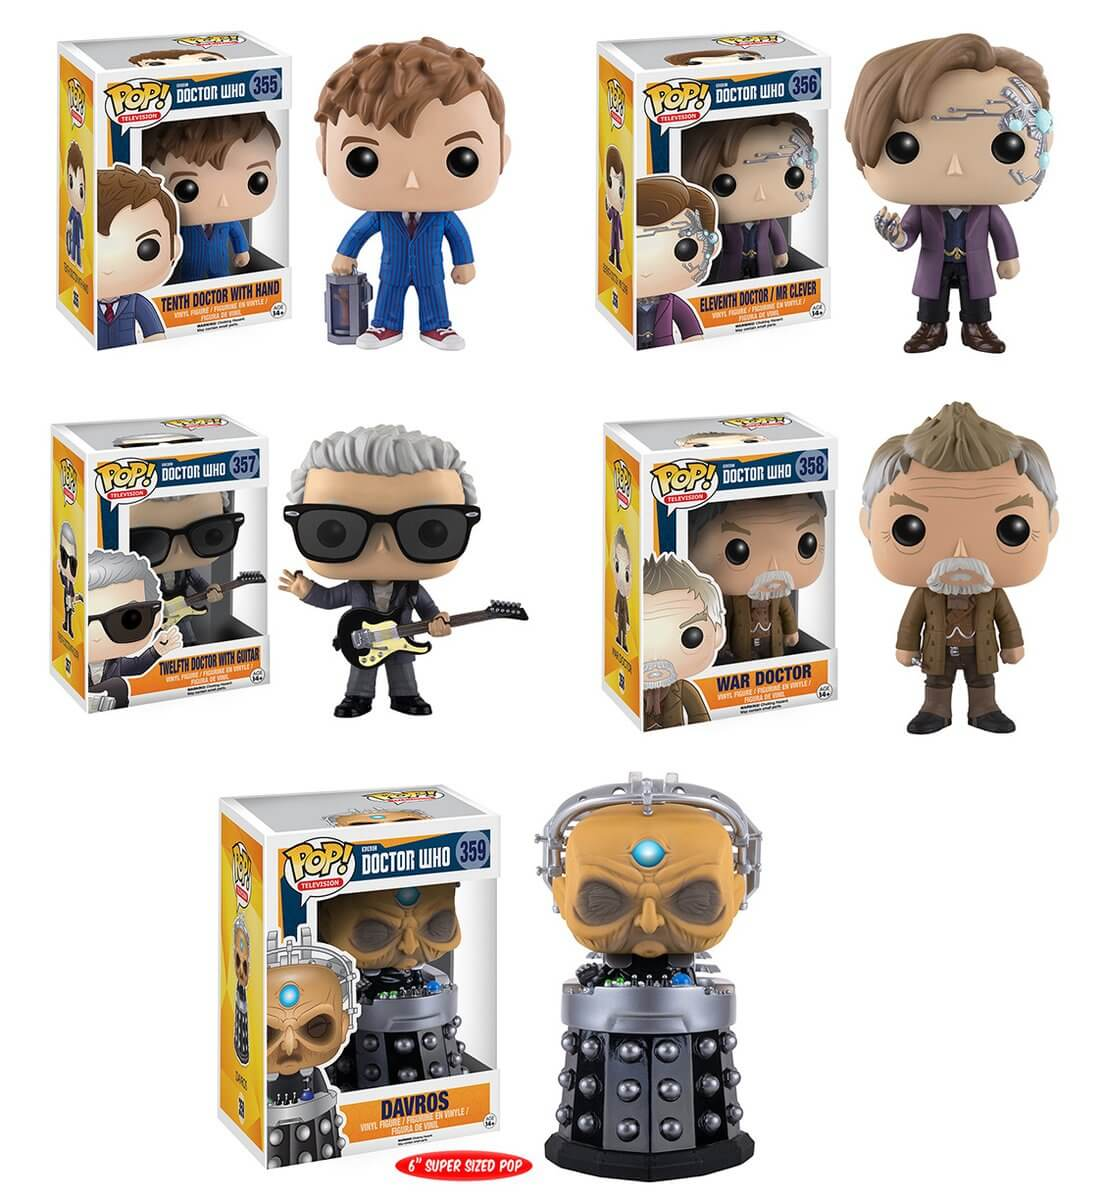 12th Doctor And Guitar Funko Doctor Who Pop Vinyl Figure